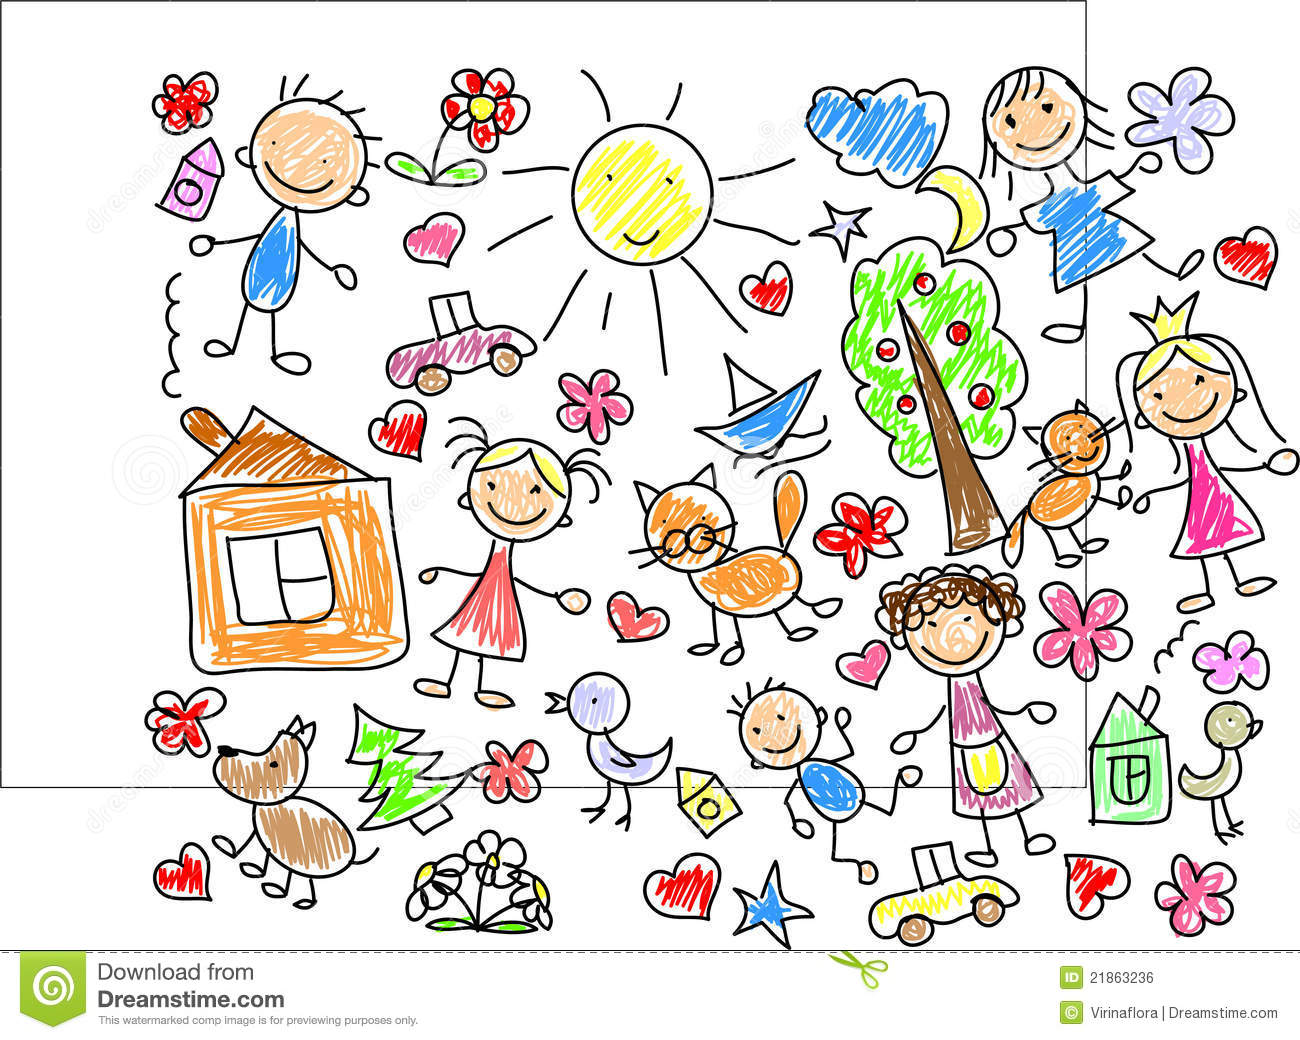 1300x1040 Coloring Pages Printable. Top Drawings For Children's Books